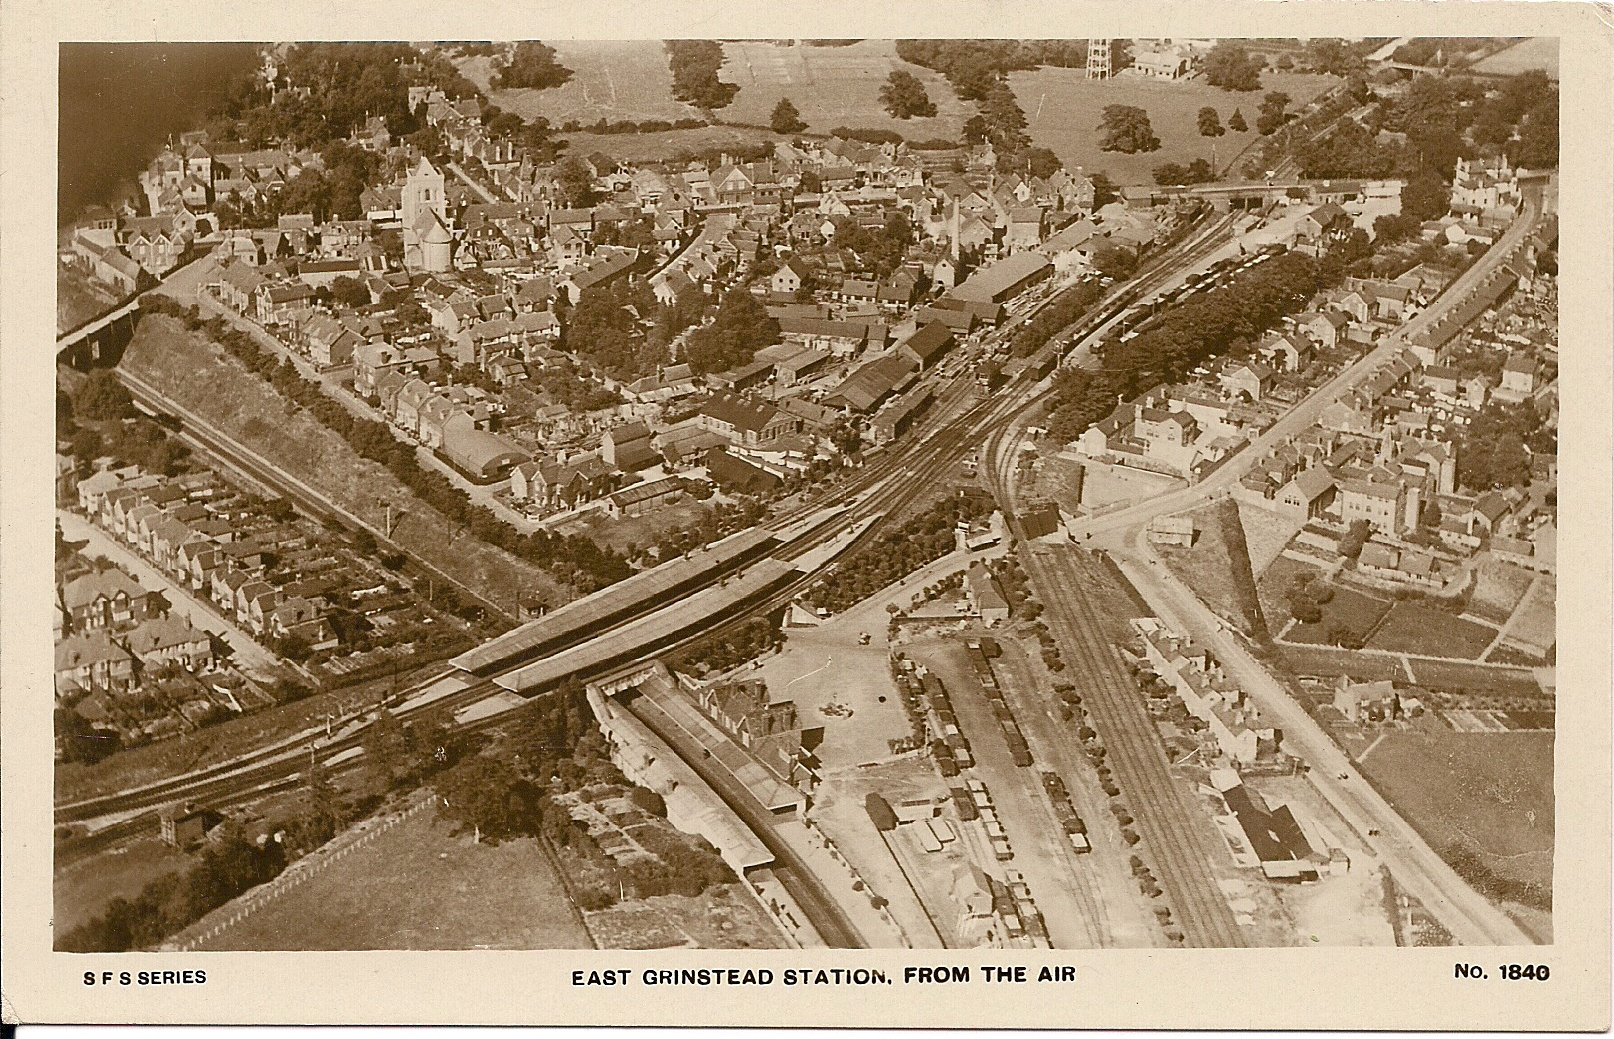 FileEast Grinstead station aerial viewjpg  Wikimedia Commons